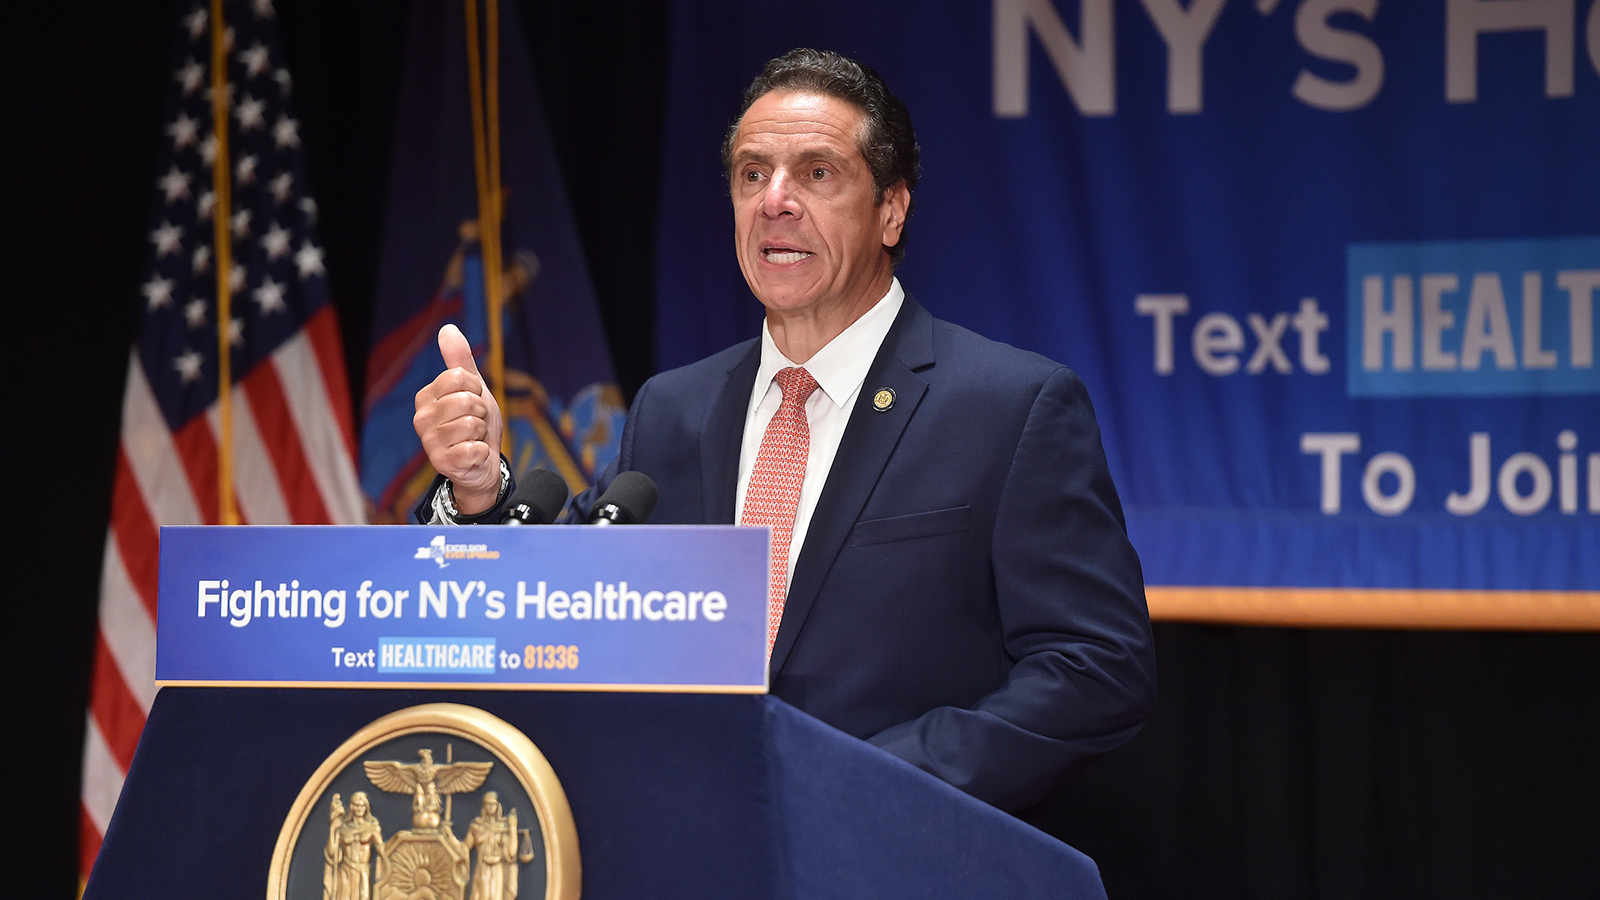 Long Island gets $15.7 million to expand health care services